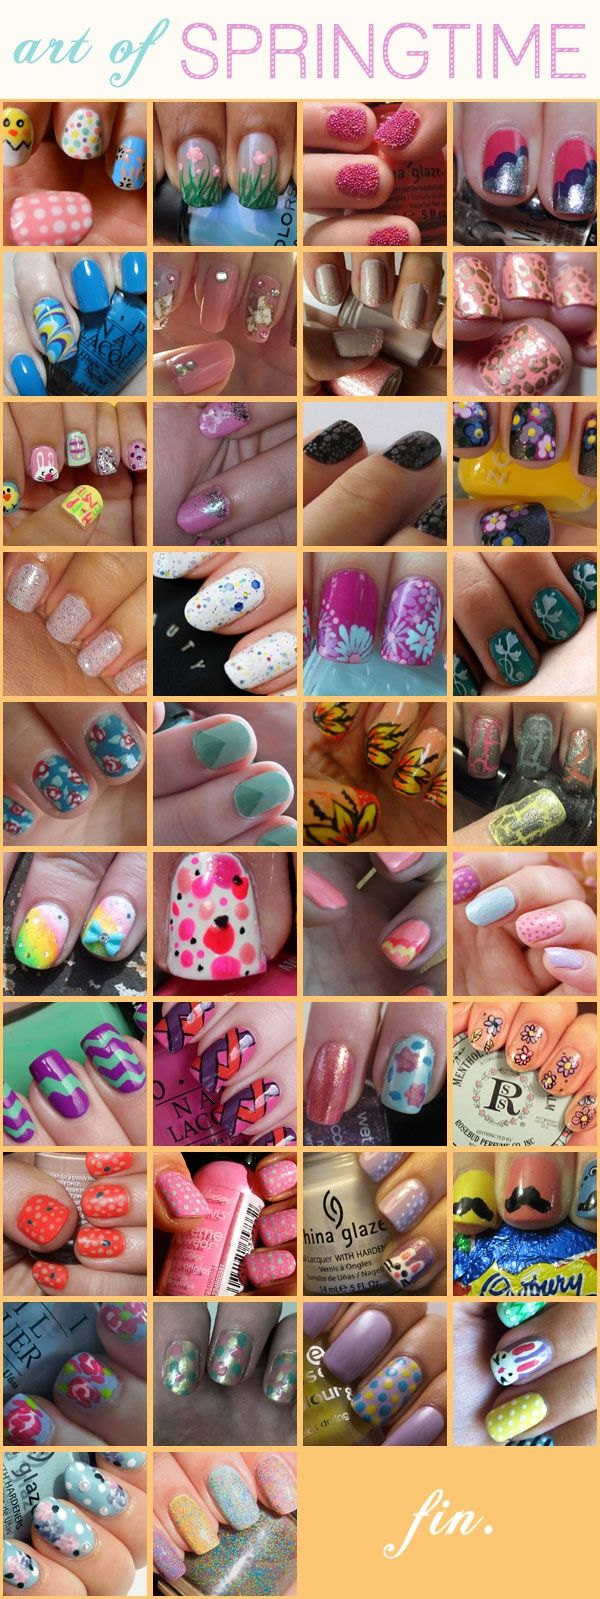 114 best nail art reviews a day in motherhood images on pinterest 38 different spring themed nail designs if you cant do it yourself solutioingenieria Choice Image